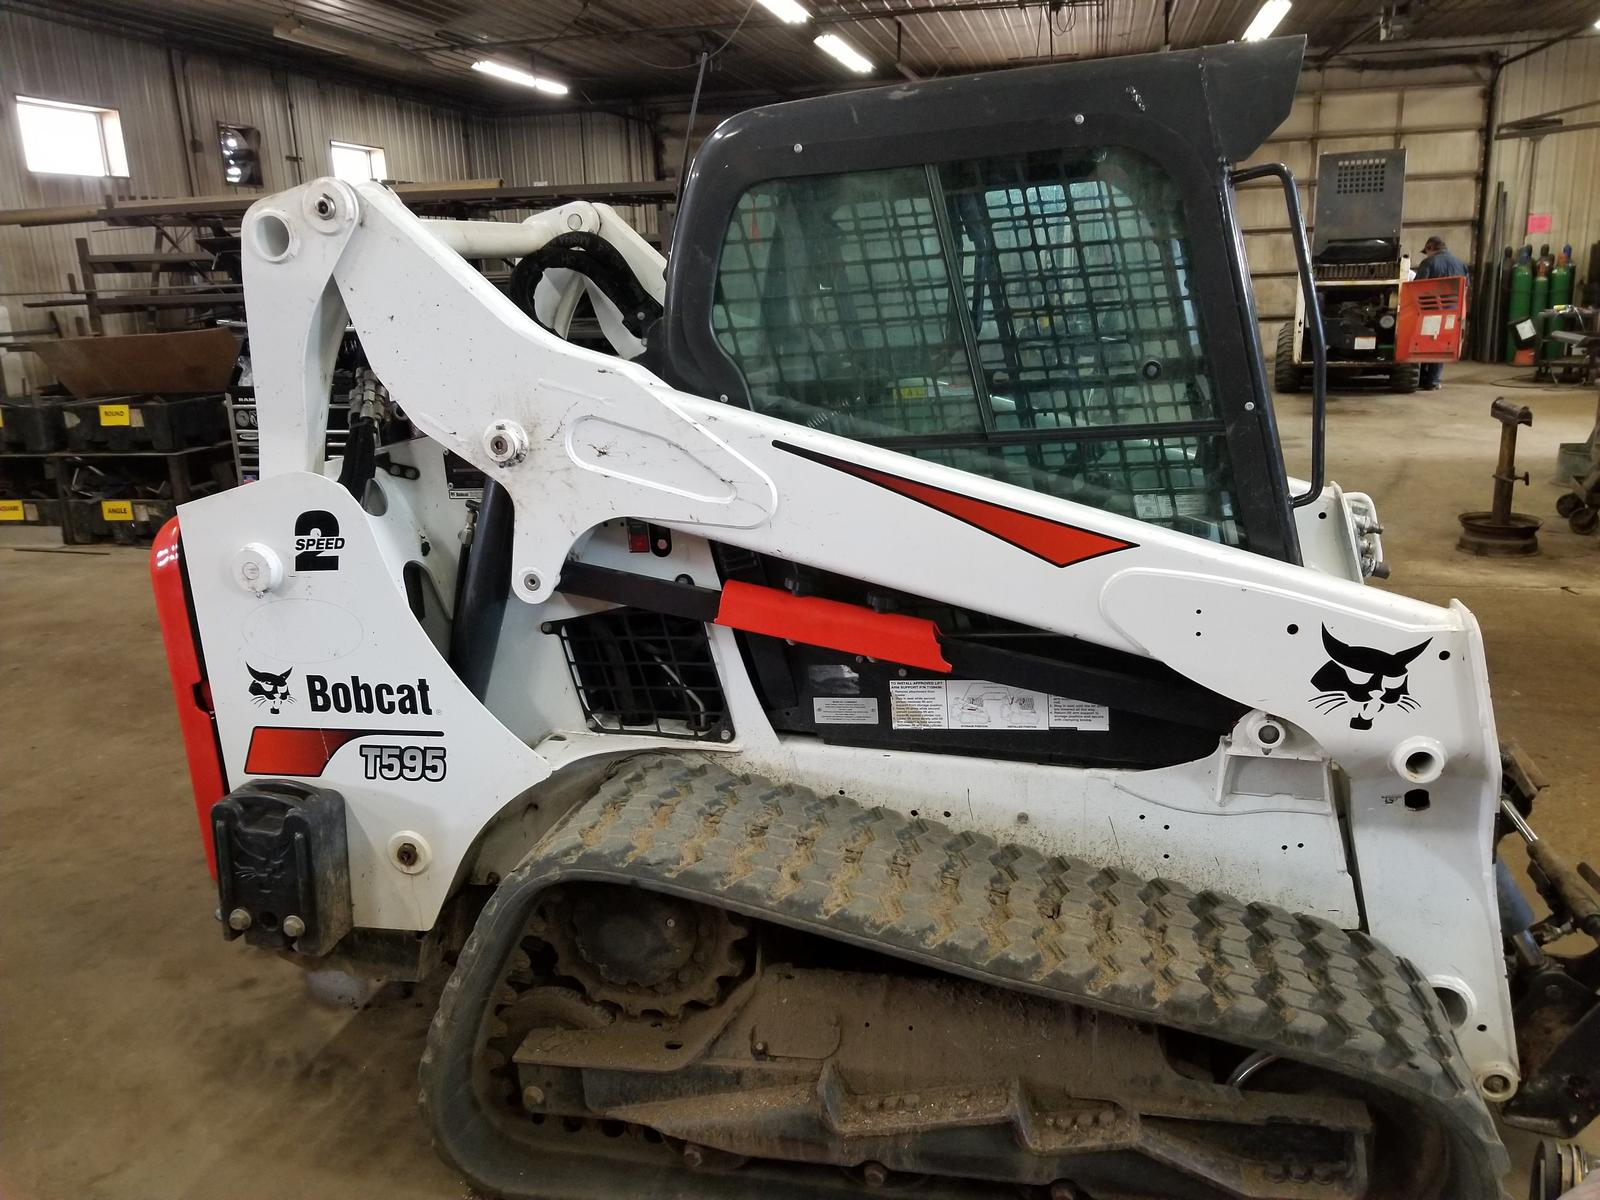 Inventory from Woods, Bobcat and Land Pride Swanson's Repair